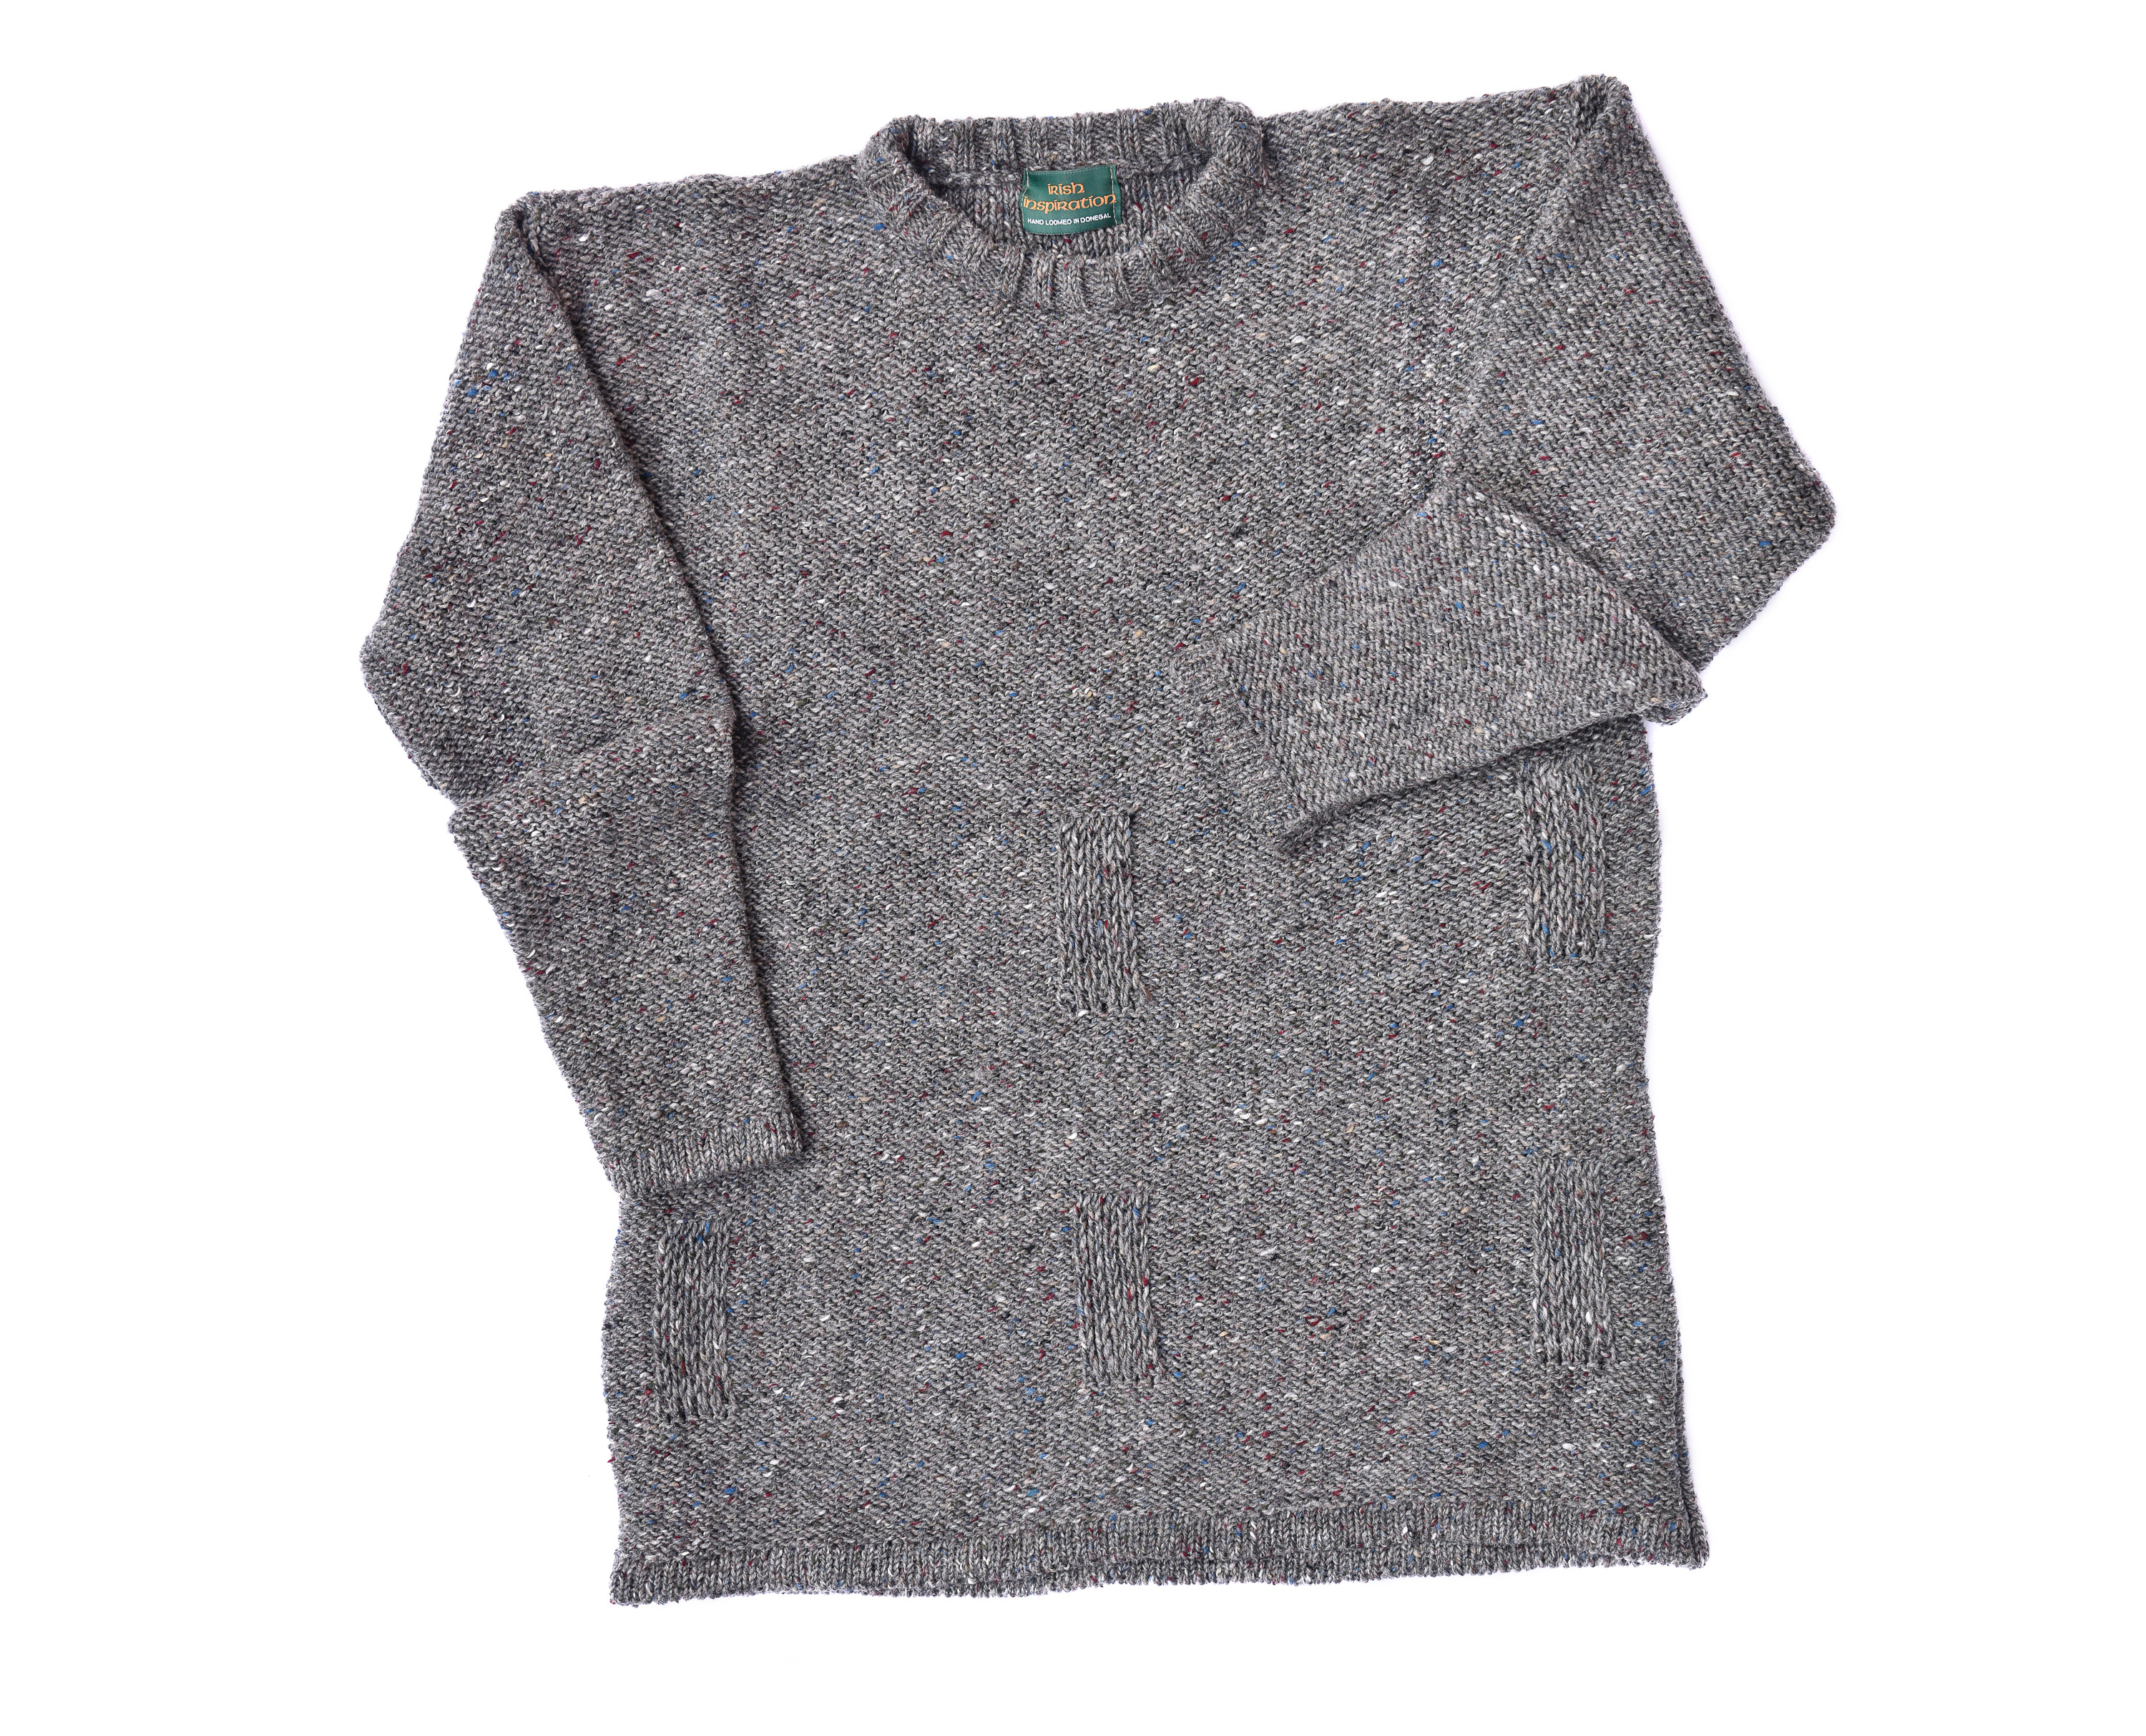 Men's Irish all wool sweater with crew neck knitted from